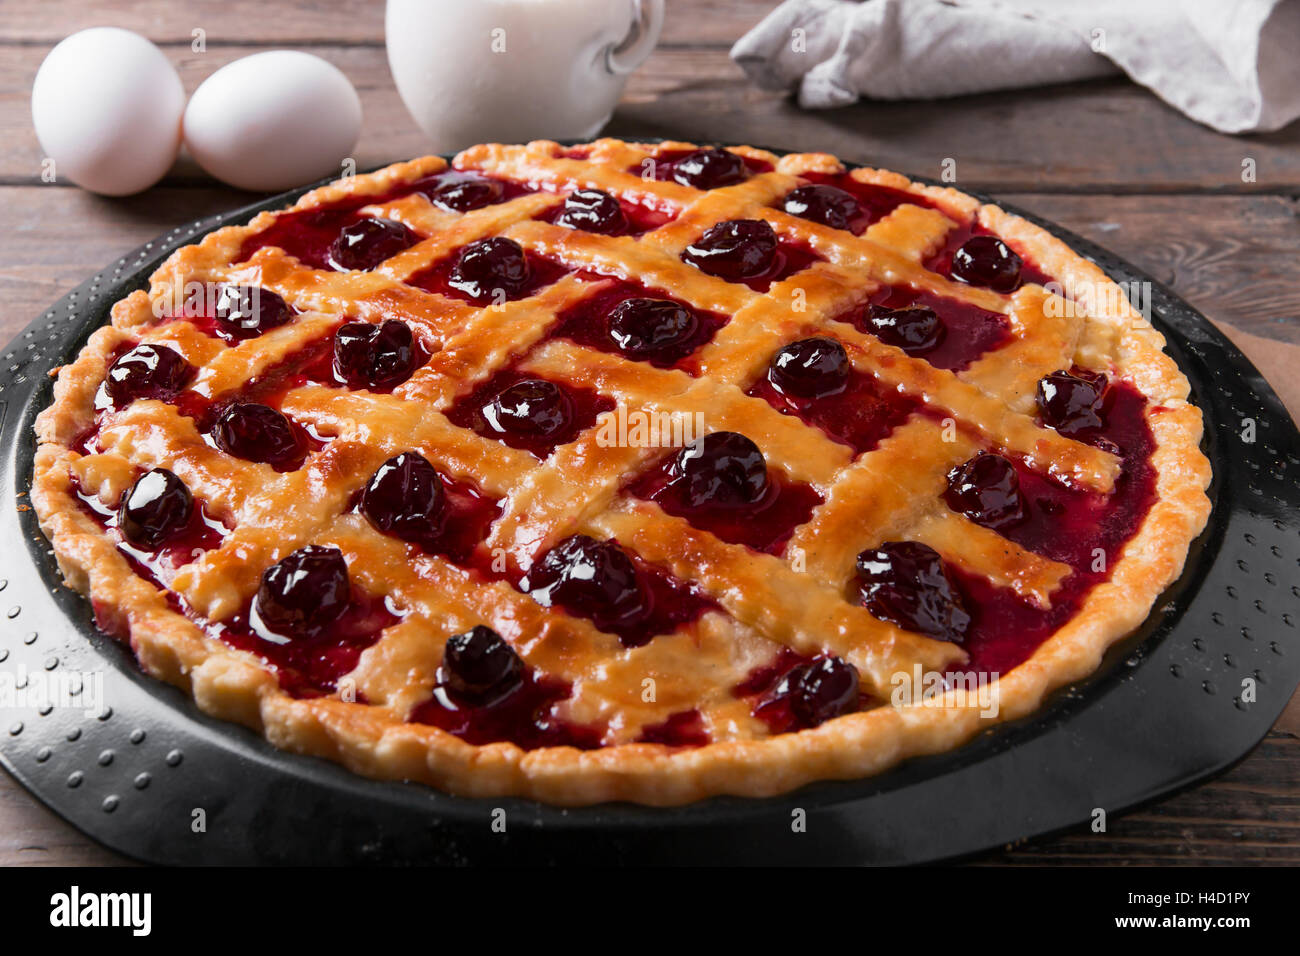 Homemade traditional sweet cherry tart pie with wooden table background. - Stock Image